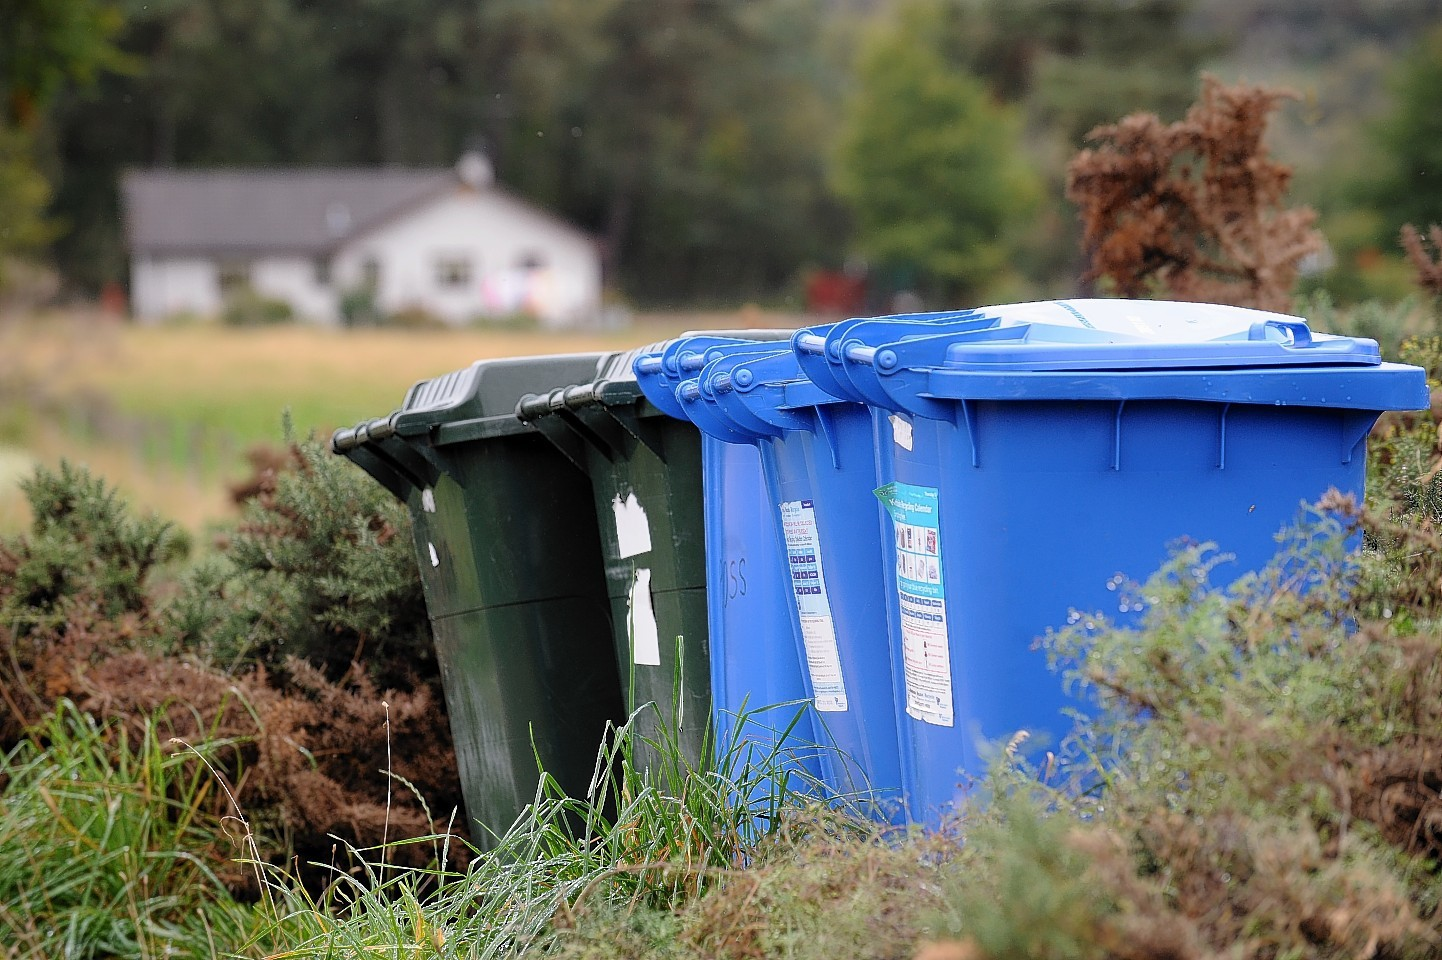 Councillors marvelled at wheelie bins similar to those pictured.